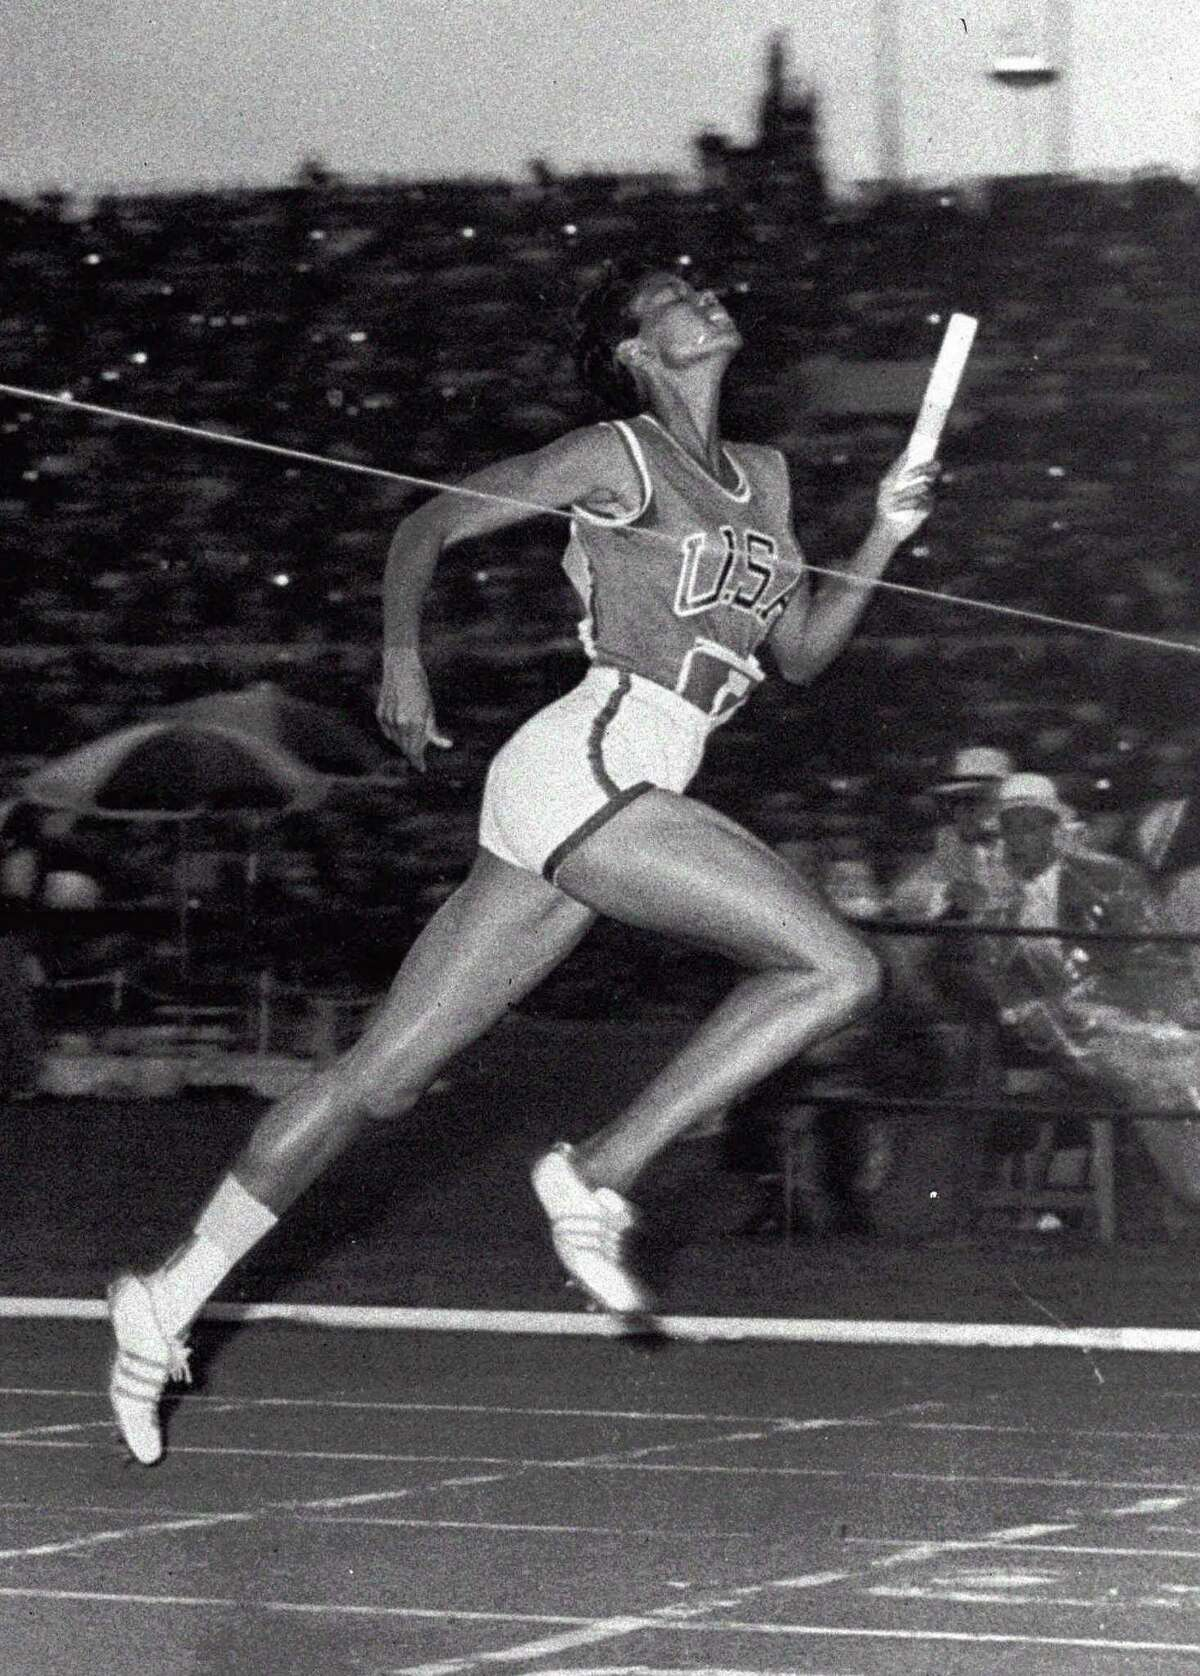 Wilma Rudolph, 20, hits the tape to win the 4x100 meter relay for the United States at the Summer Olympics in Rome in 1960. She was the fastest woman of her era.